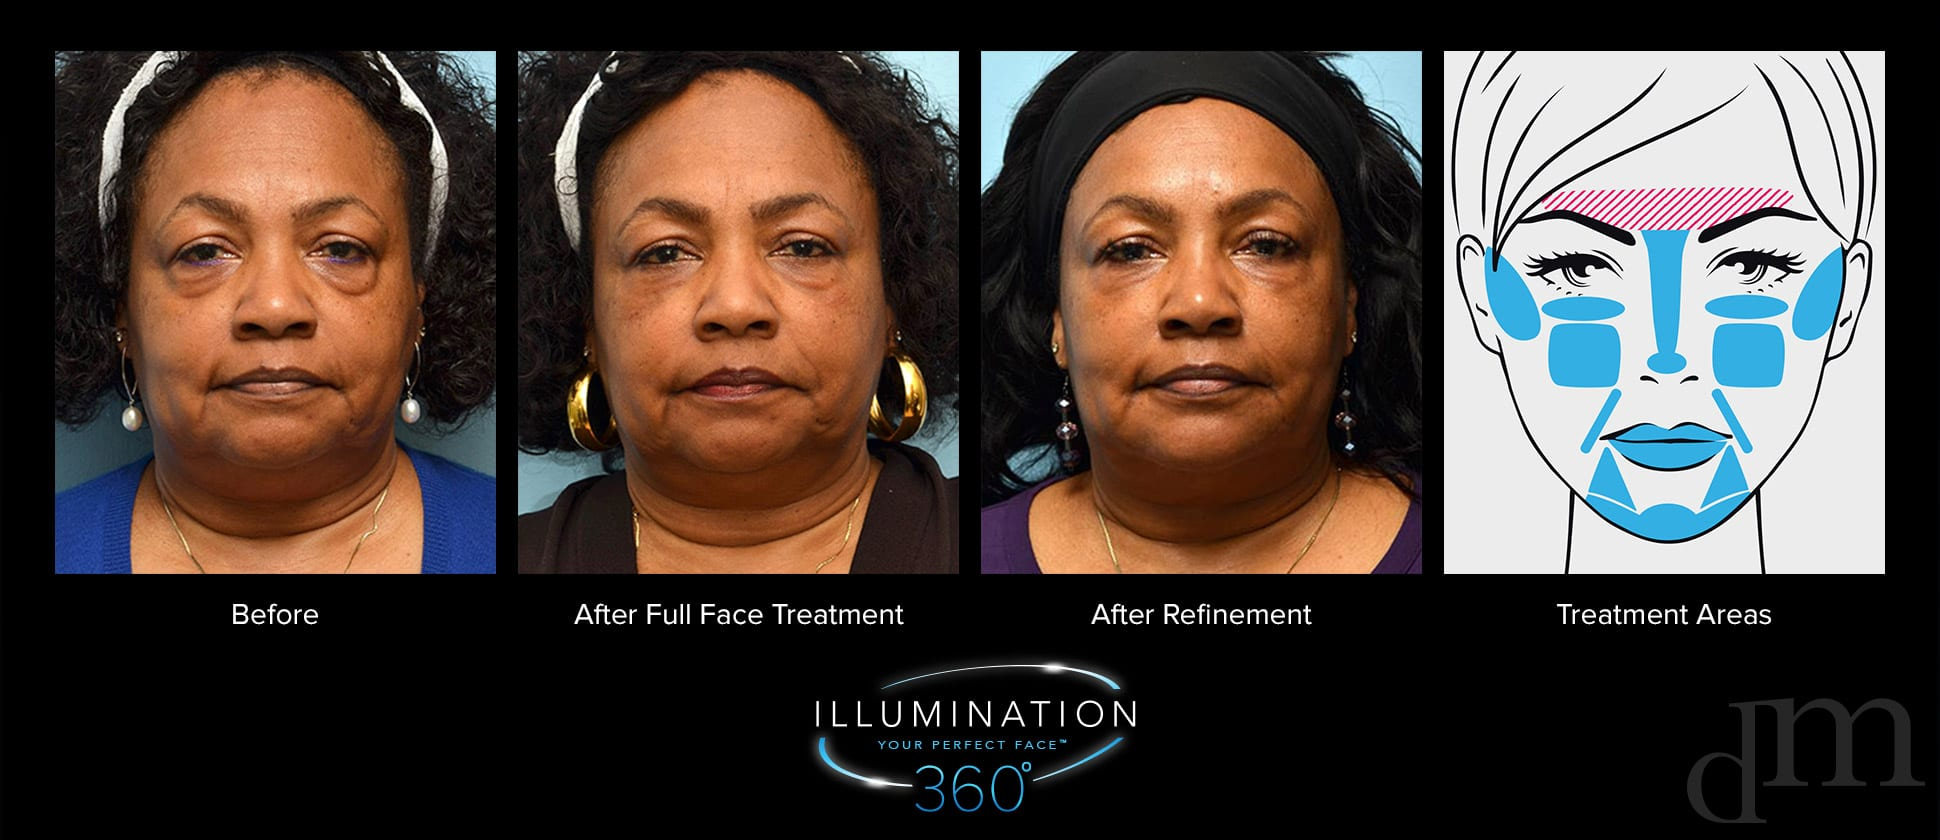 Older woman before and after full face treatment, after refinement treatment, and diagram of treatment areas.